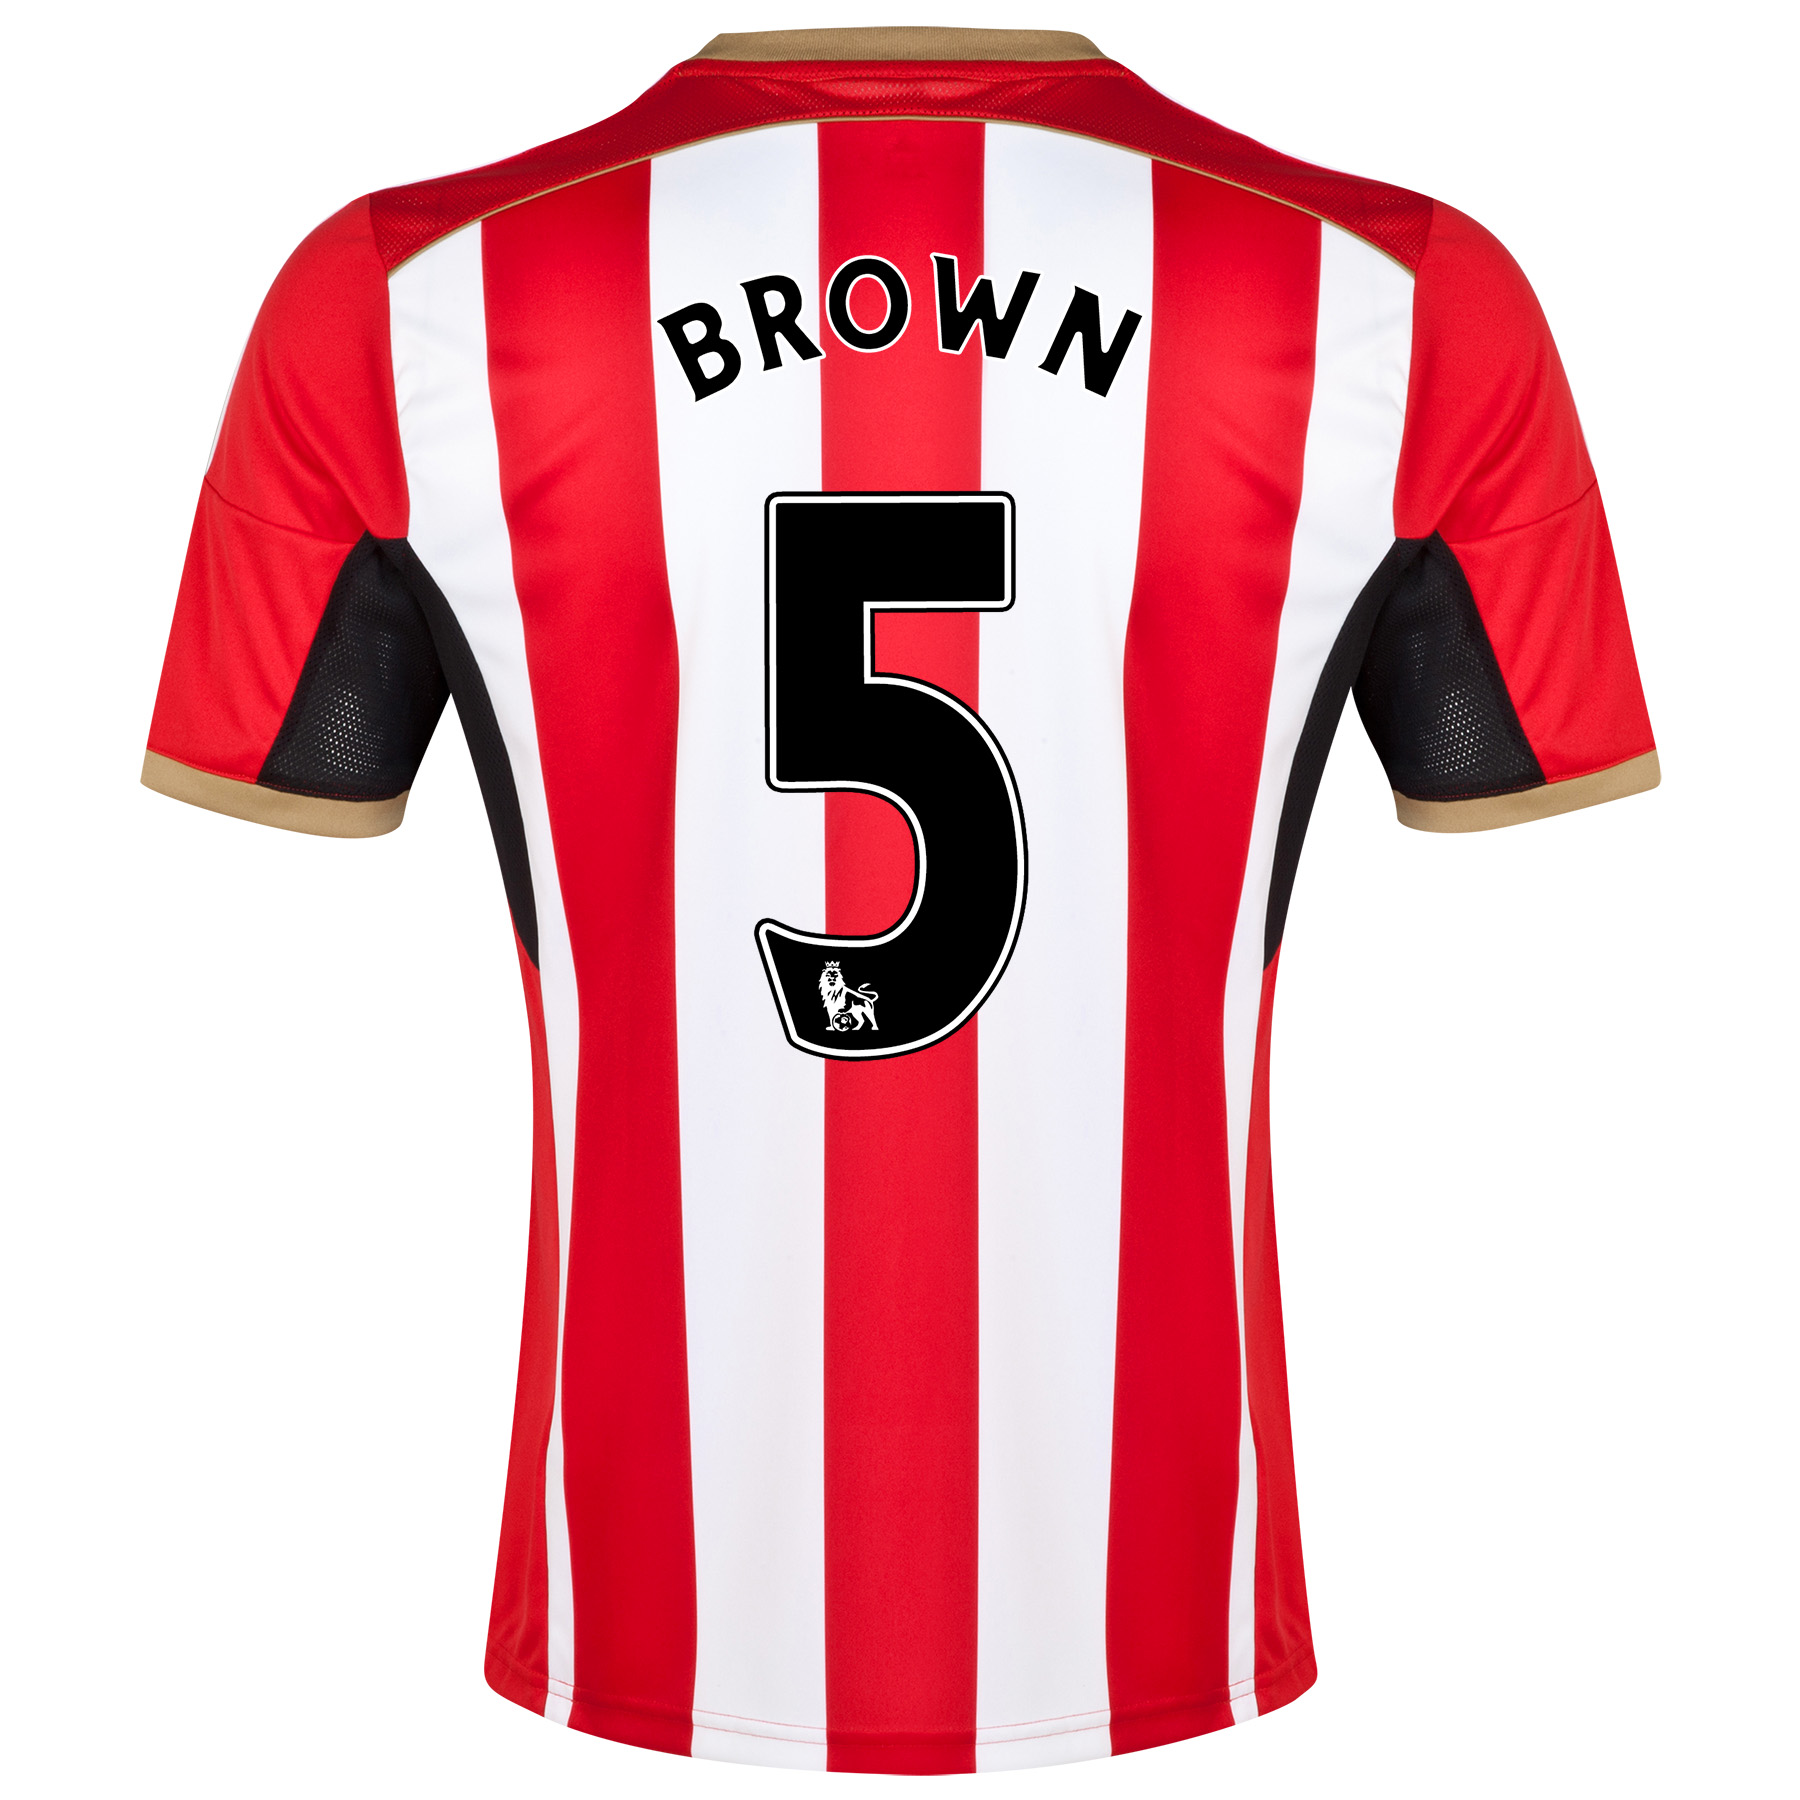 Sunderland Home Shirt 2014/15 - Junior Red with Brown 5 printing